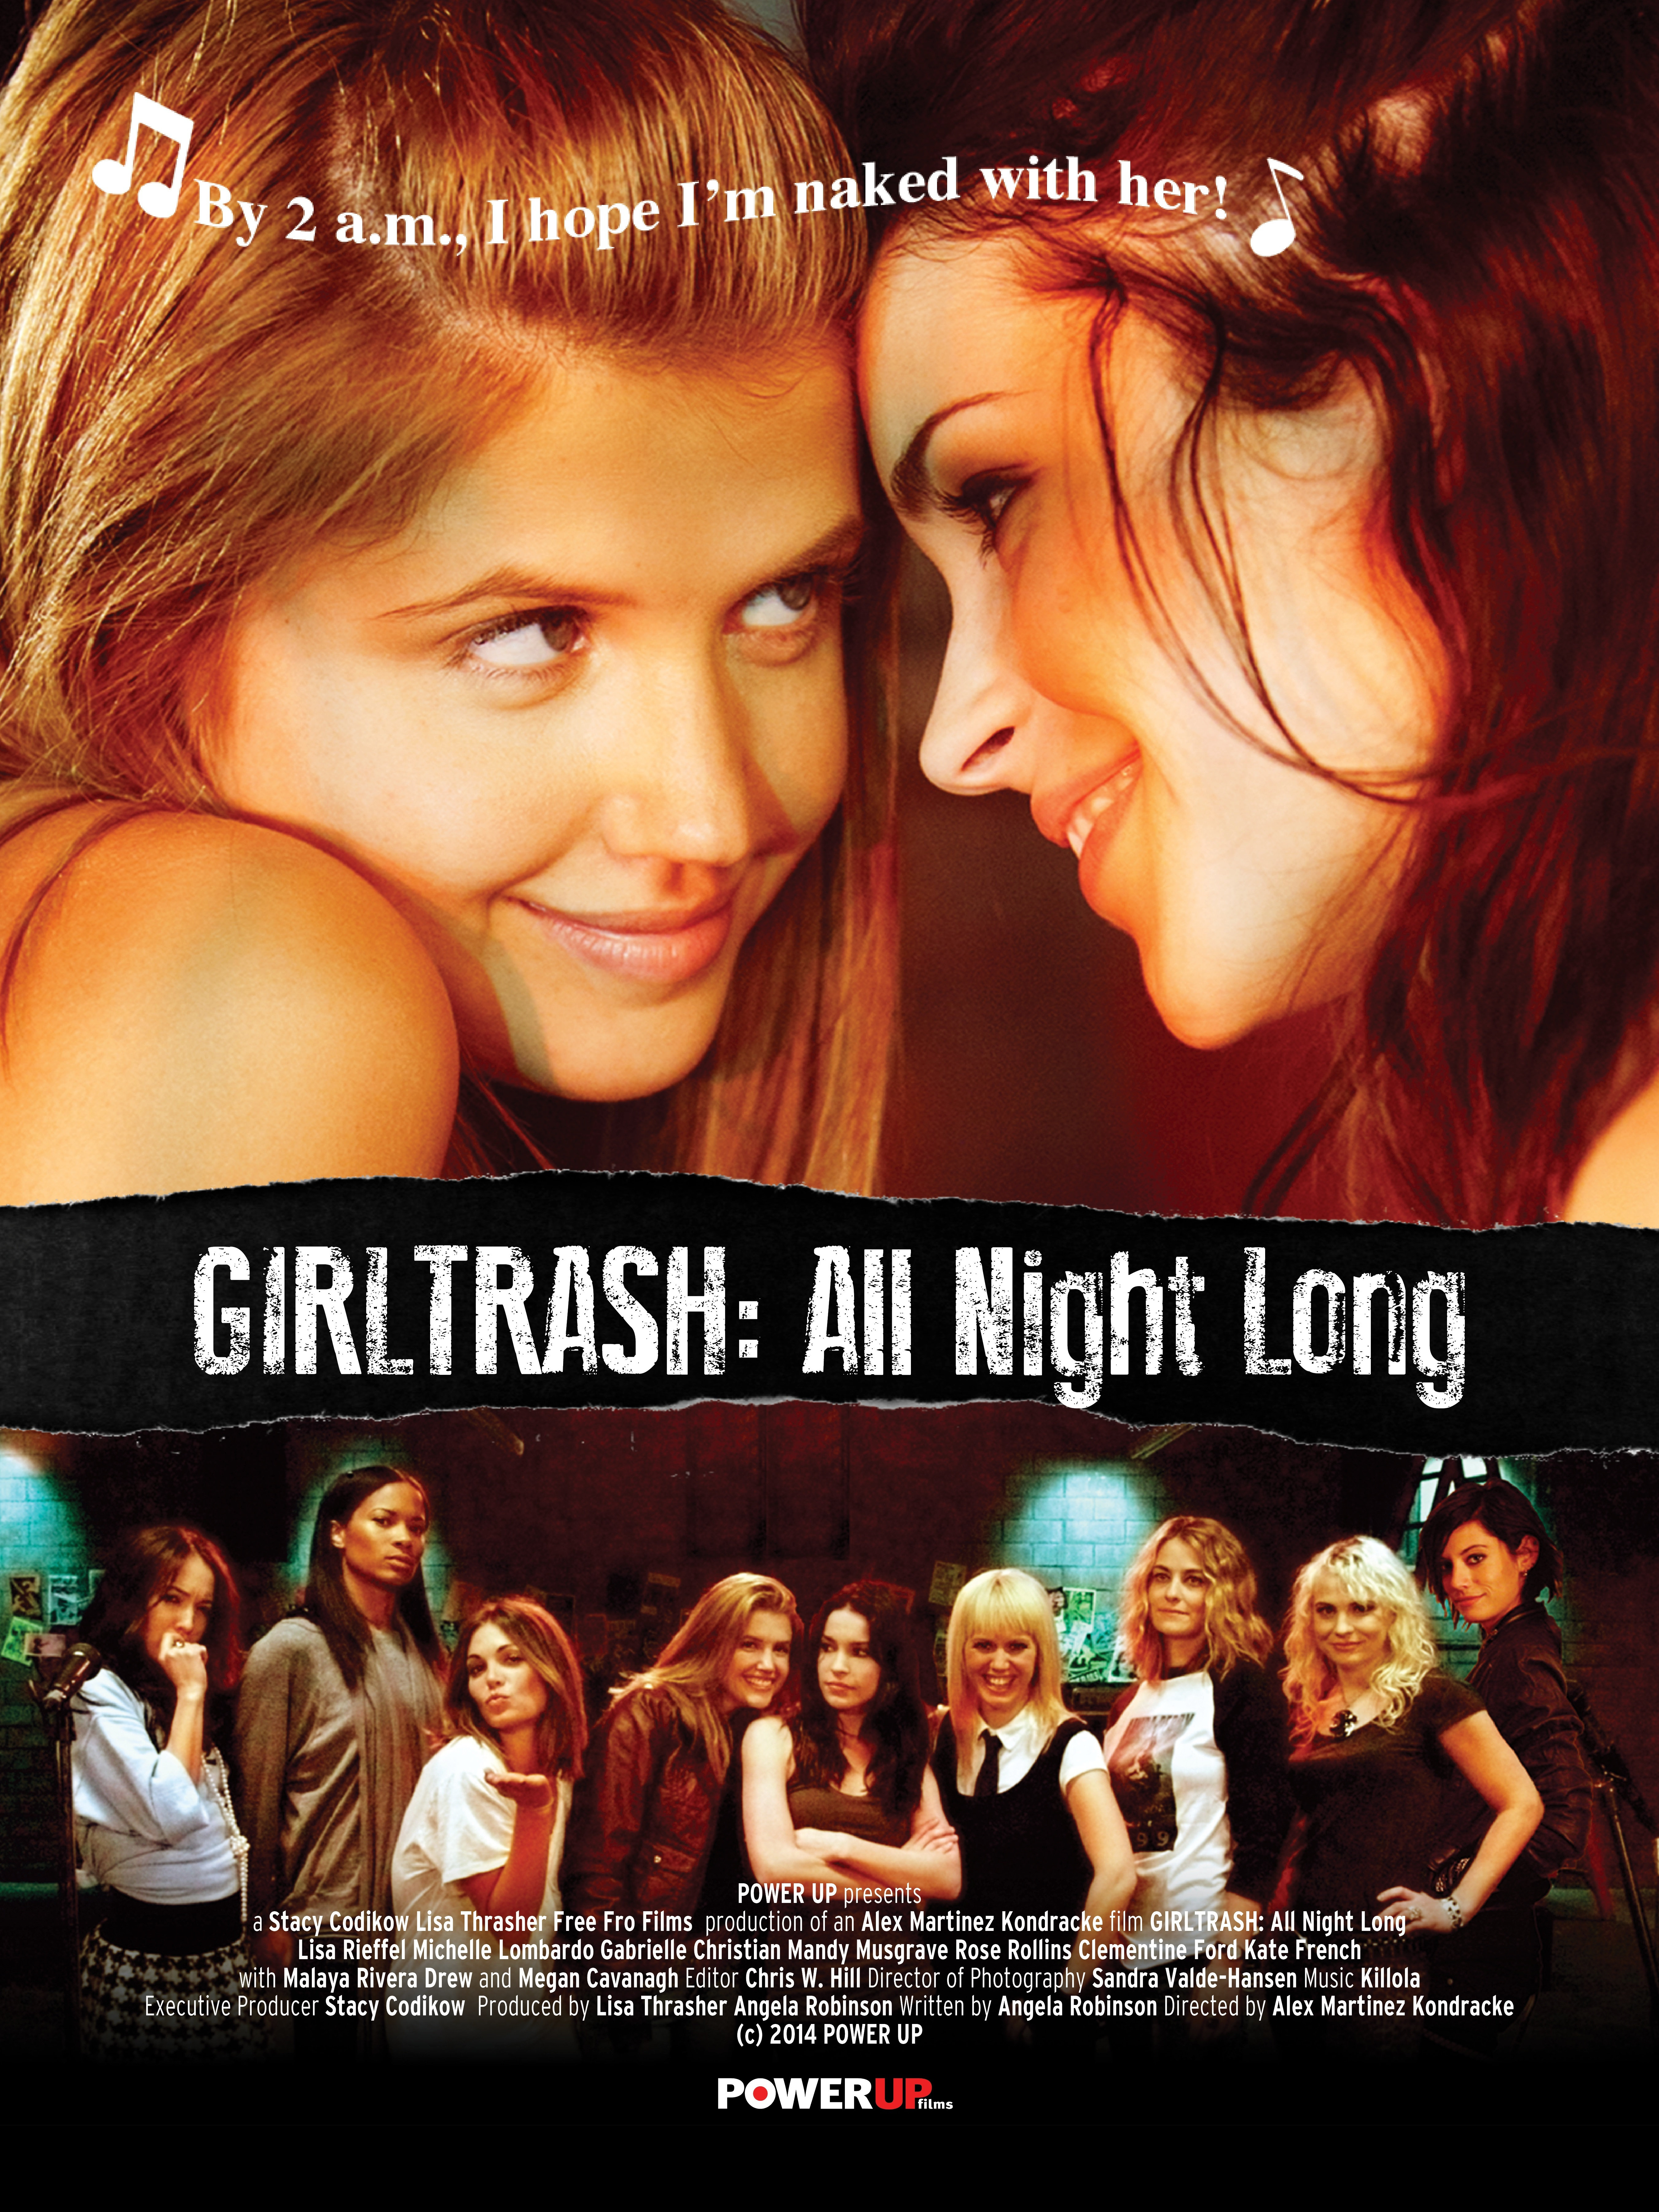 Movies about teenage lesbians